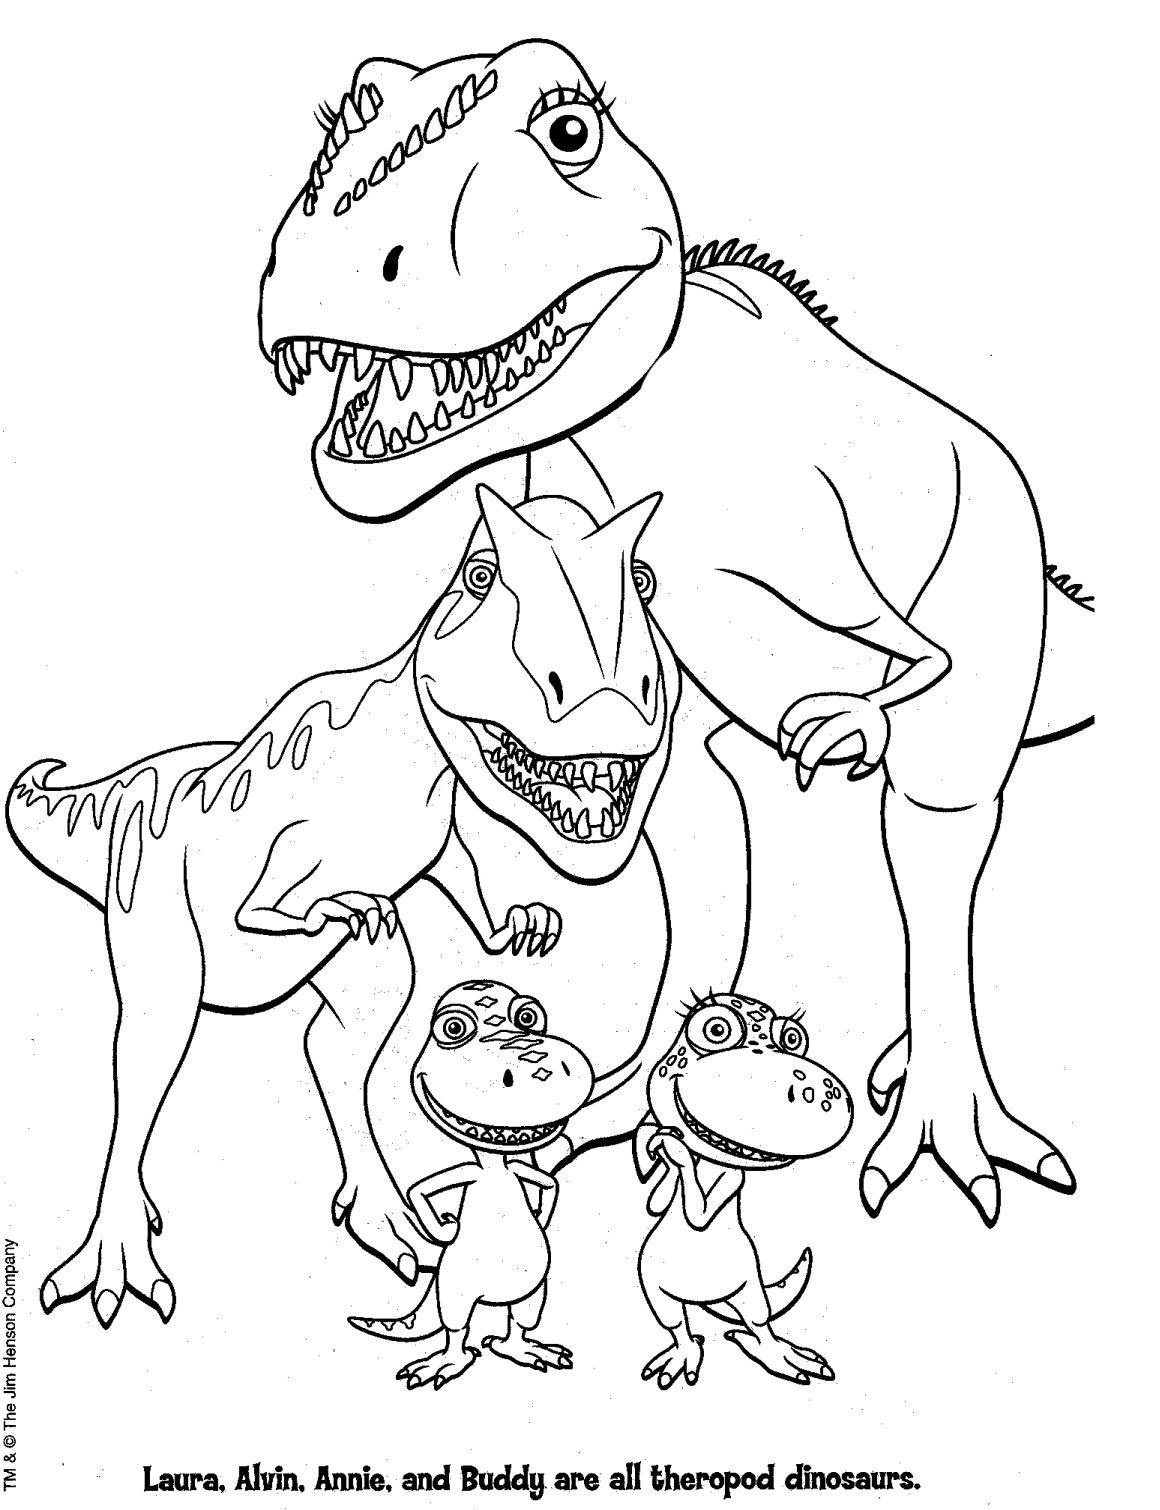 Coloring Pages : Printable Dinosaur Coloring Pages Dinosaurs - Free Printable Dinosaur Coloring Pages